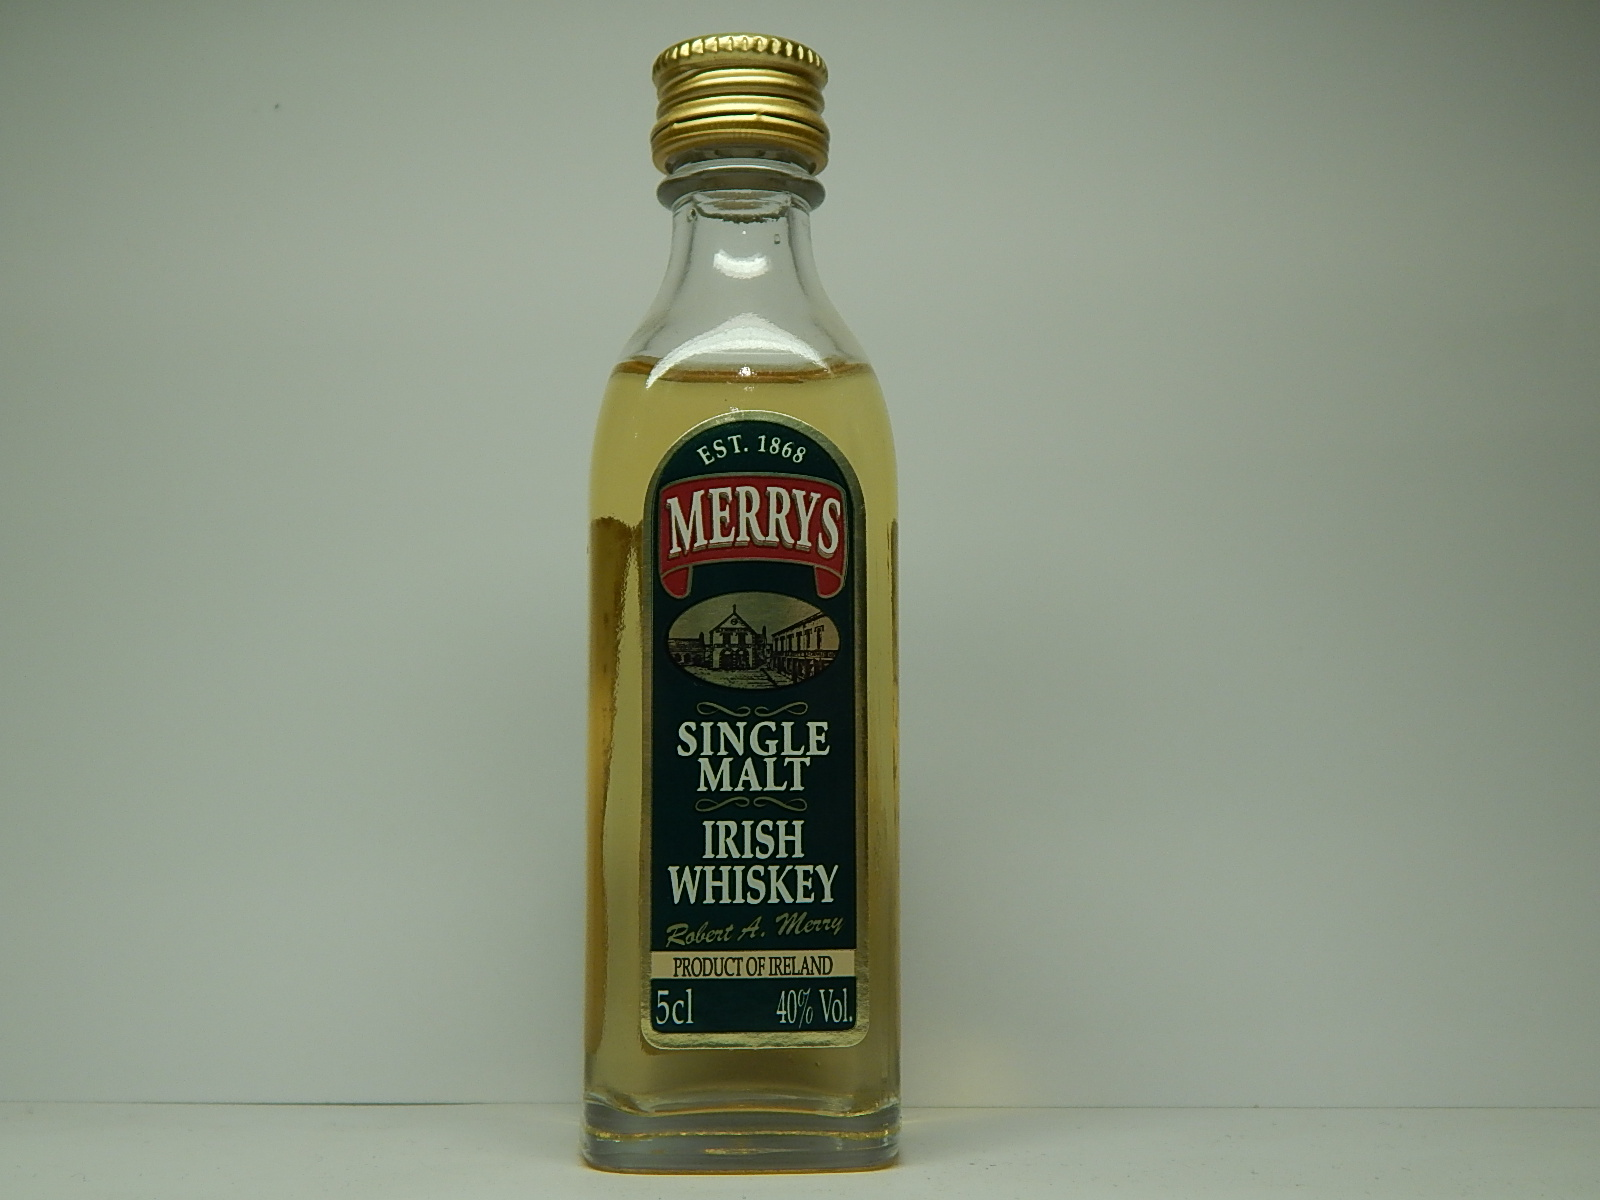 MERRYS Single Malt Irish Whiskey